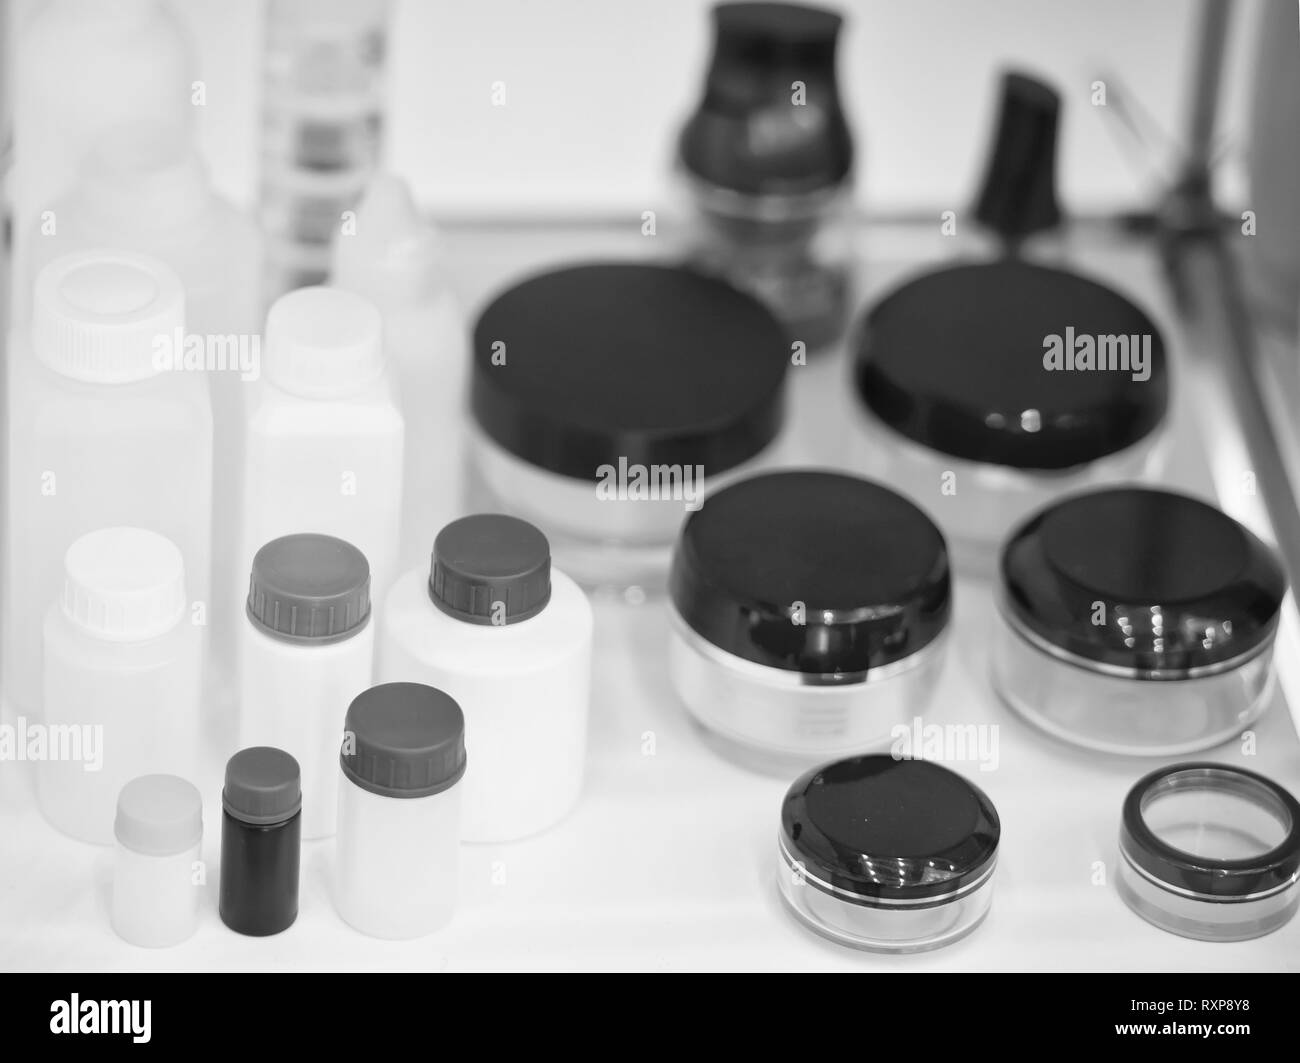 empty blank beauty product or skincare cosmetology plastic bottles or colorful flacons vial on light background - Stock Image